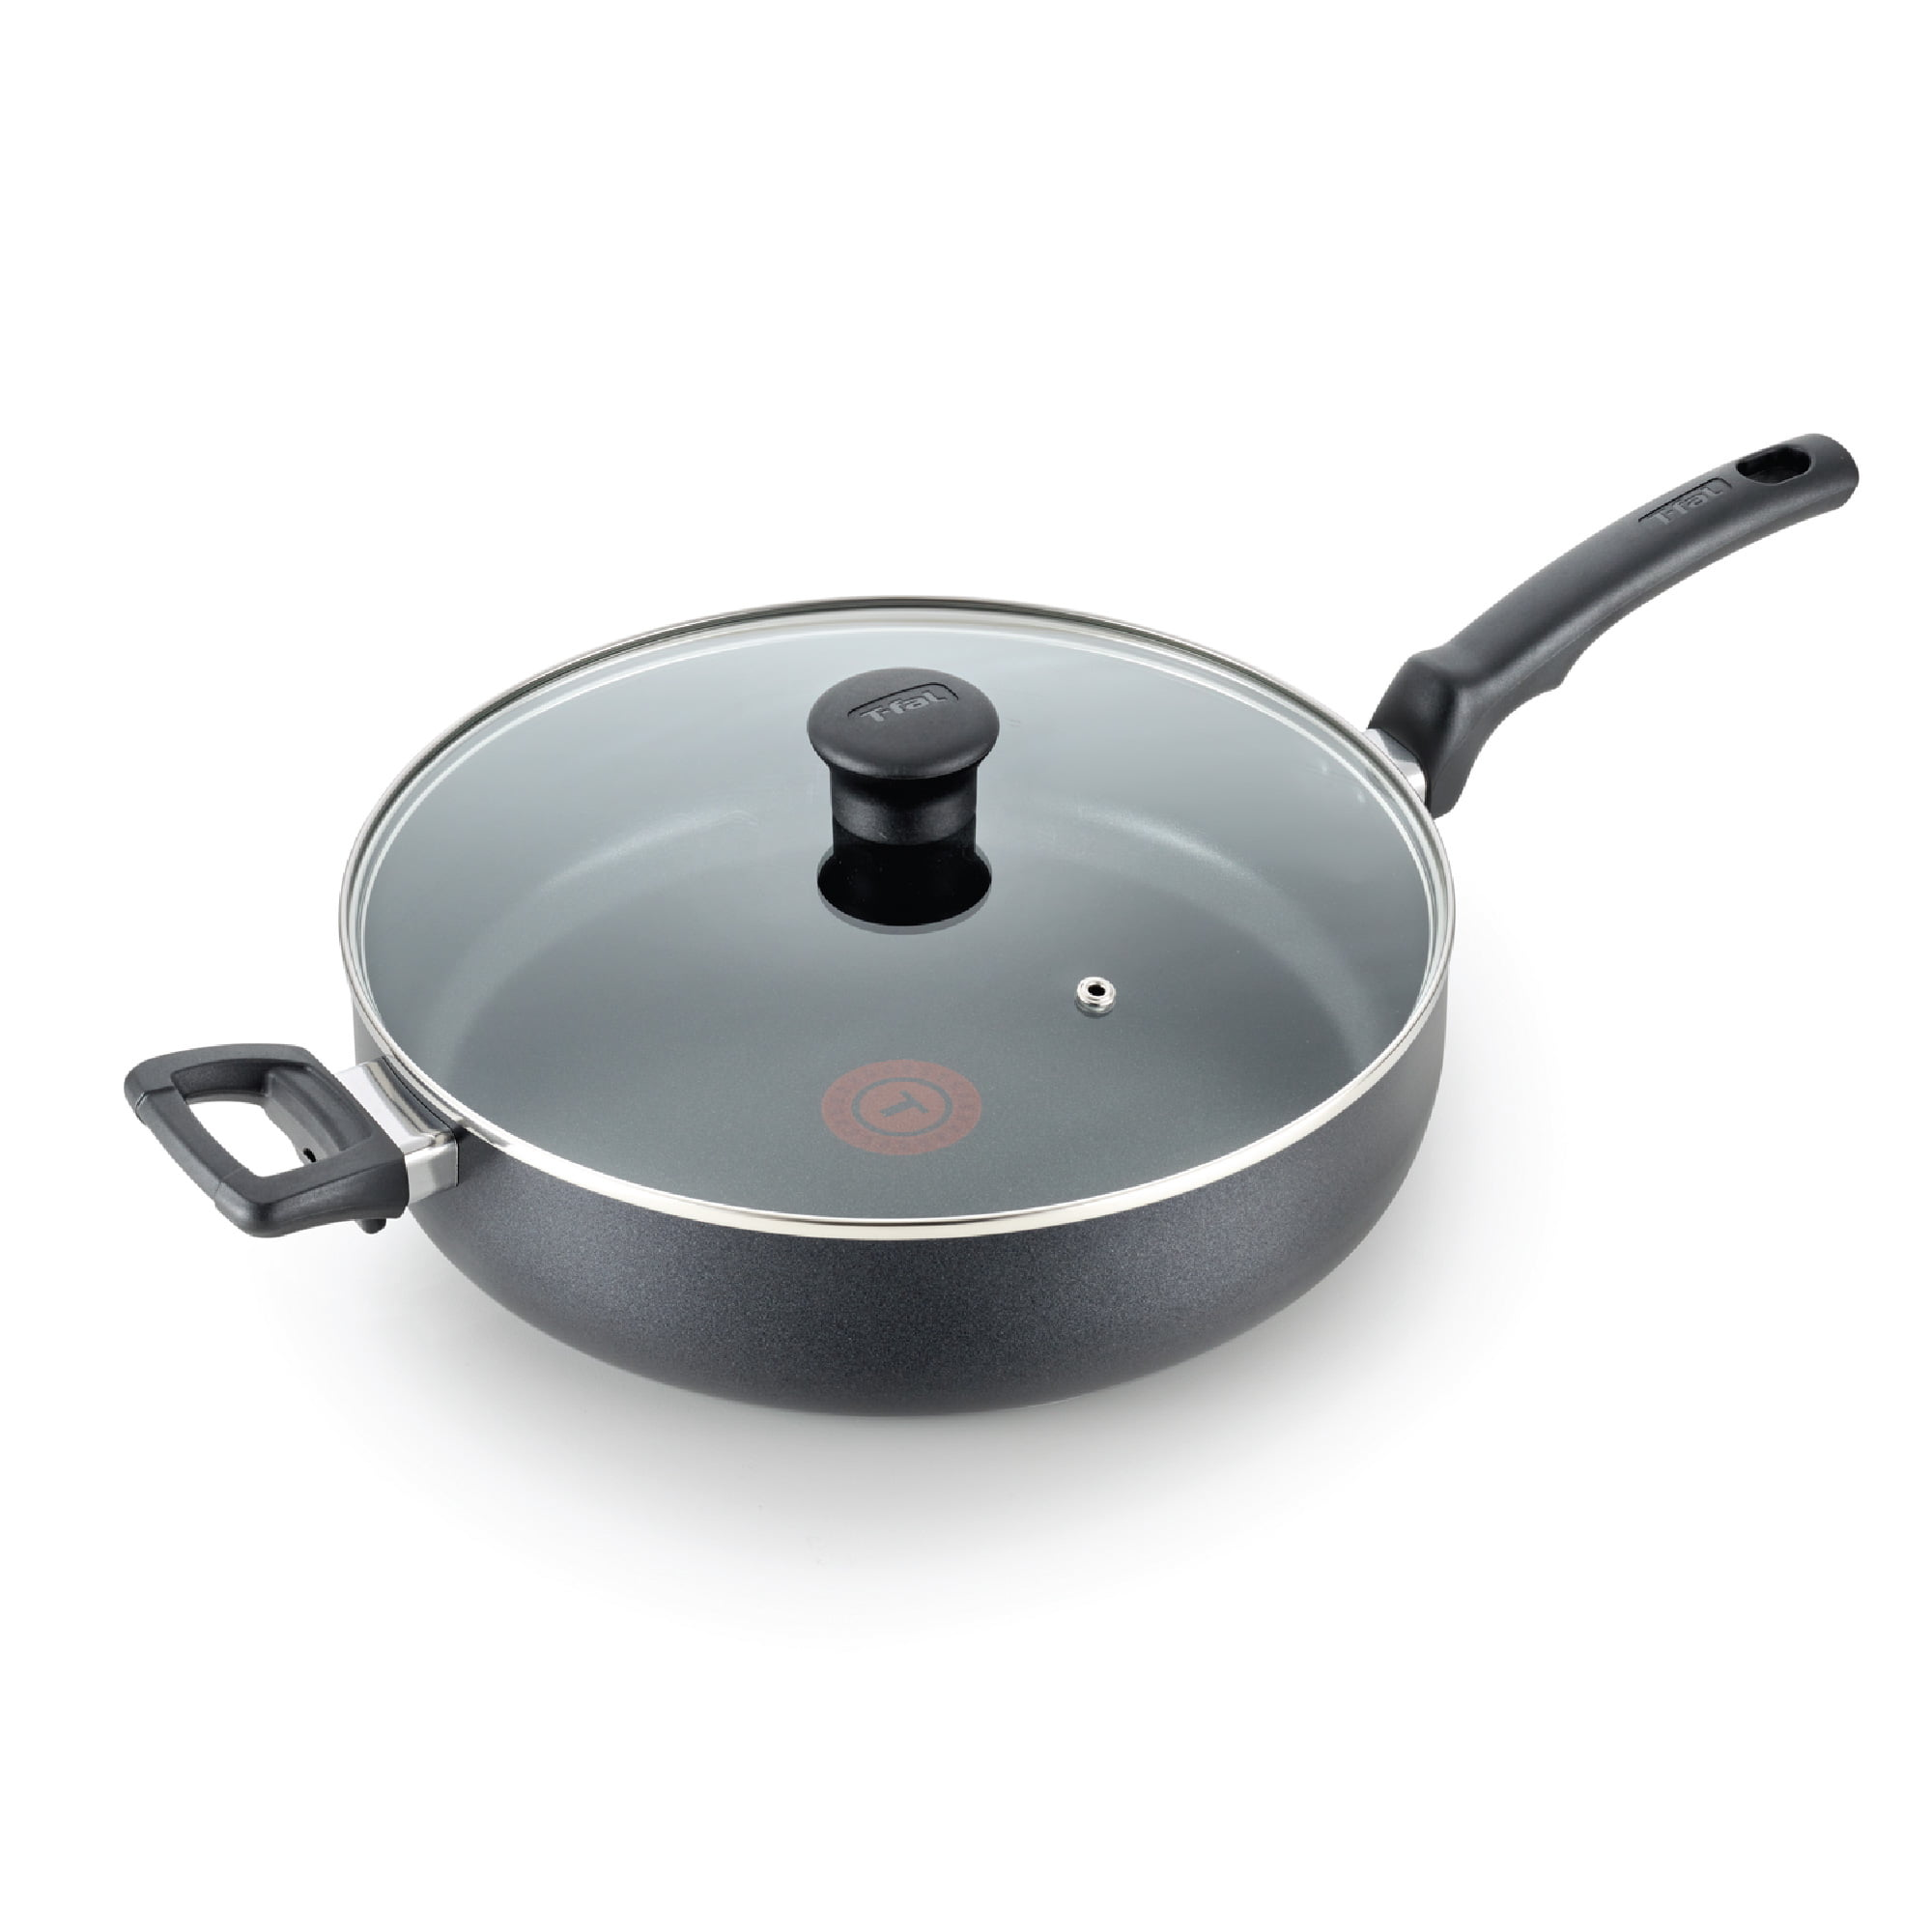 T-fal Kitchen Solutions Nonstick 5Qt. Jumbo Cooker, Black